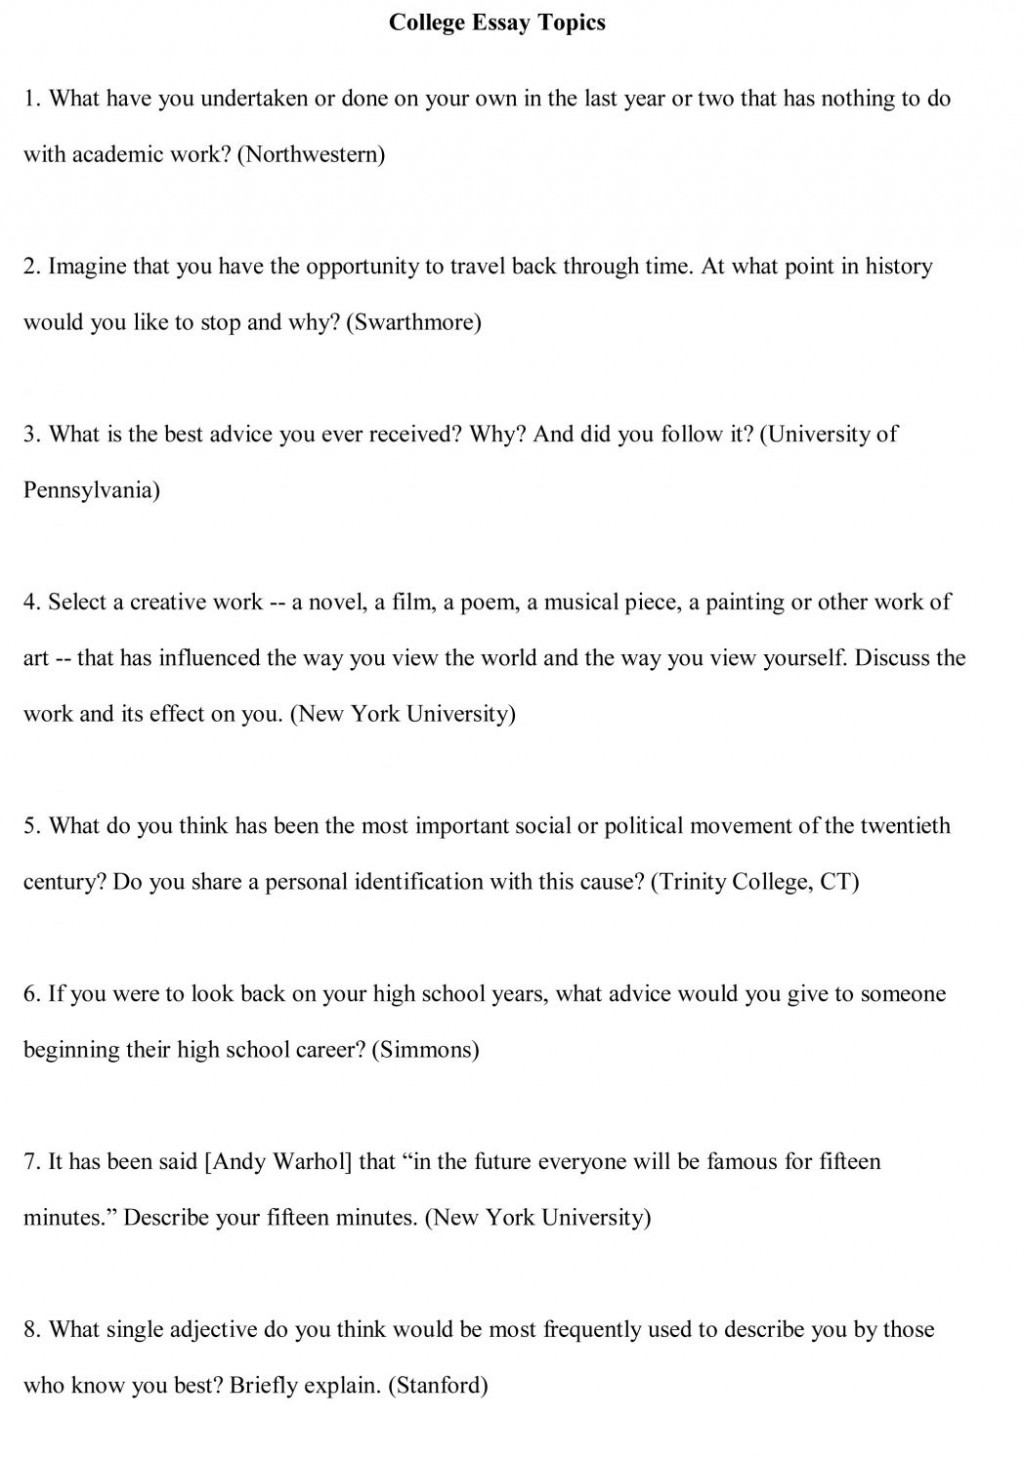 011 Cbest Essay Prompts Writing Exam California Basic Educational Tsi Prompt Examples College Topics Free Sa Example 1048x1496 Unique For Esl Students Argumentative Expository Large